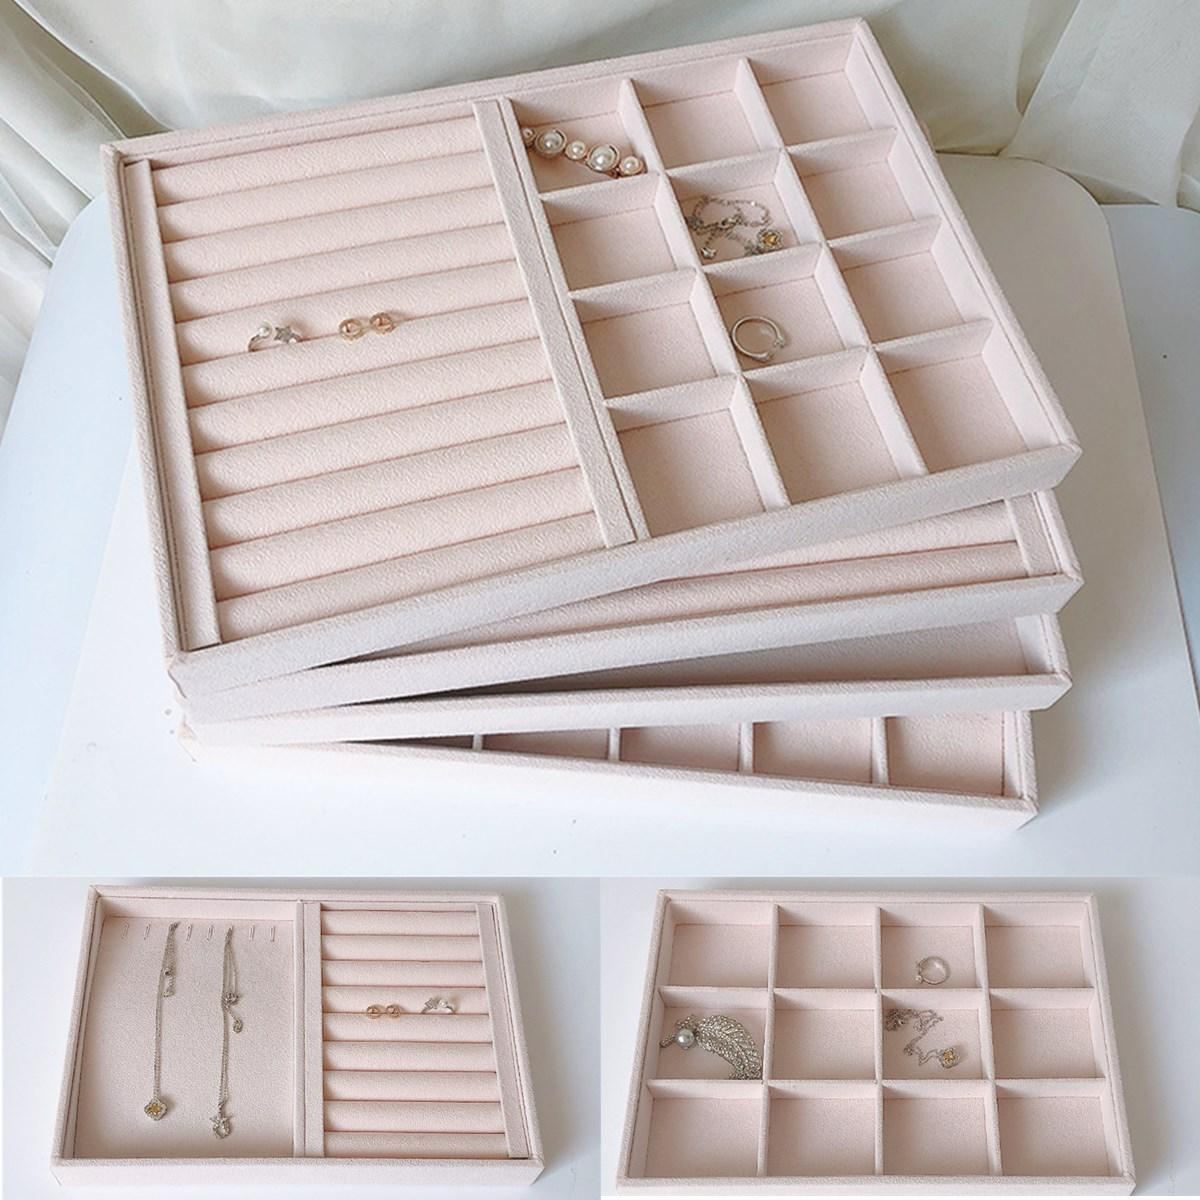 Picture of: Jewelry Display Organizer Box Storage Showcase Necklaces Earrings Ring Tray Sale Banggood Com